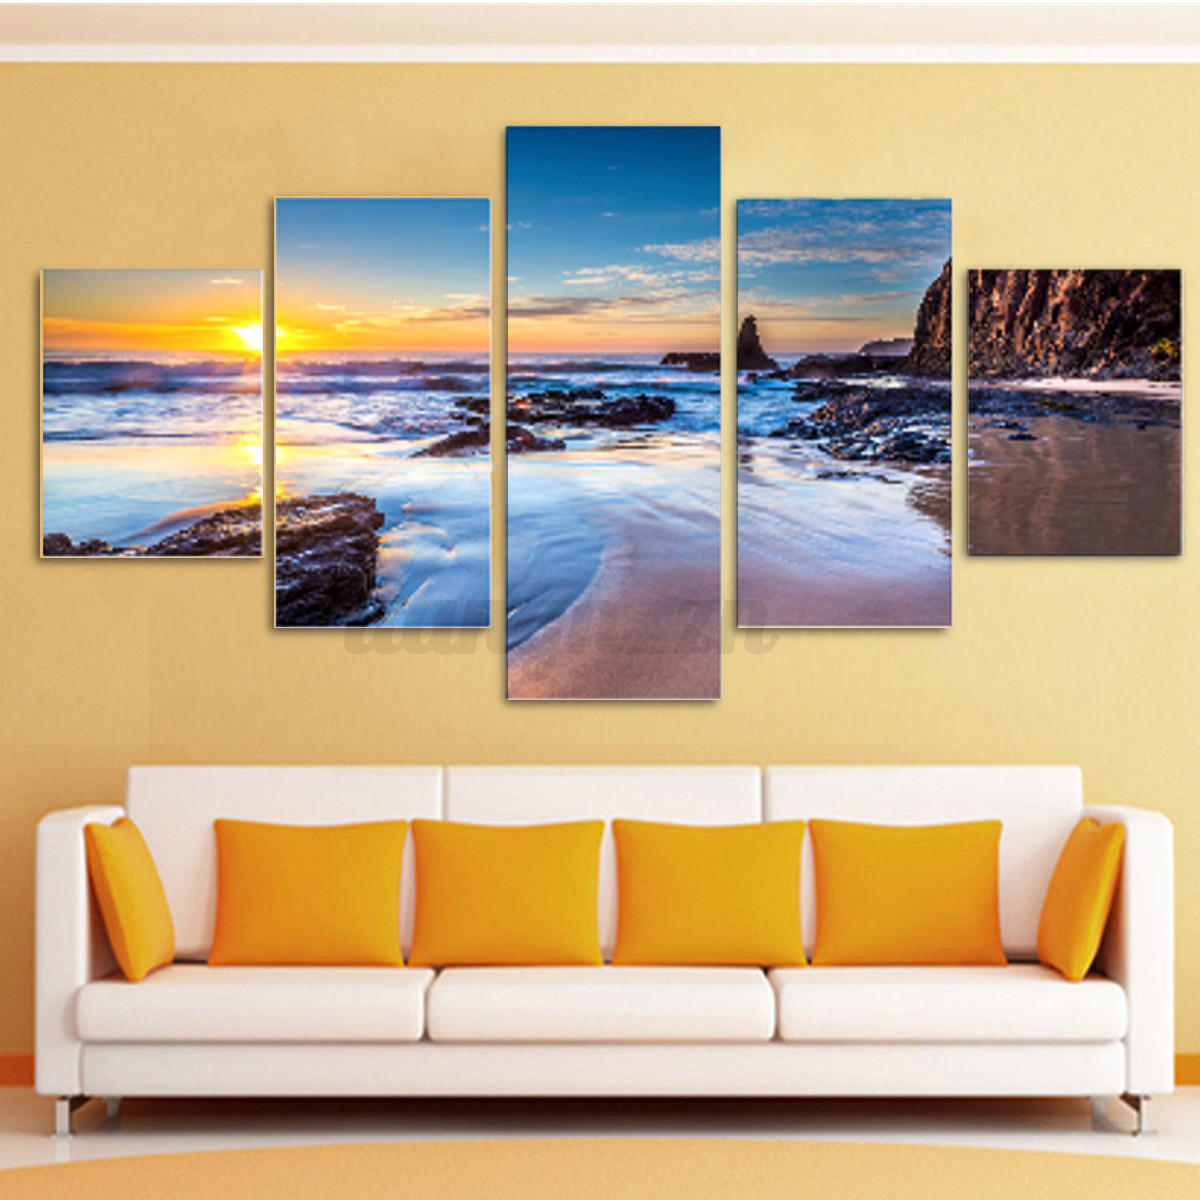 5Pcs Canvas Print Painting Wall Picture Modern Home Art Decor Framed ...